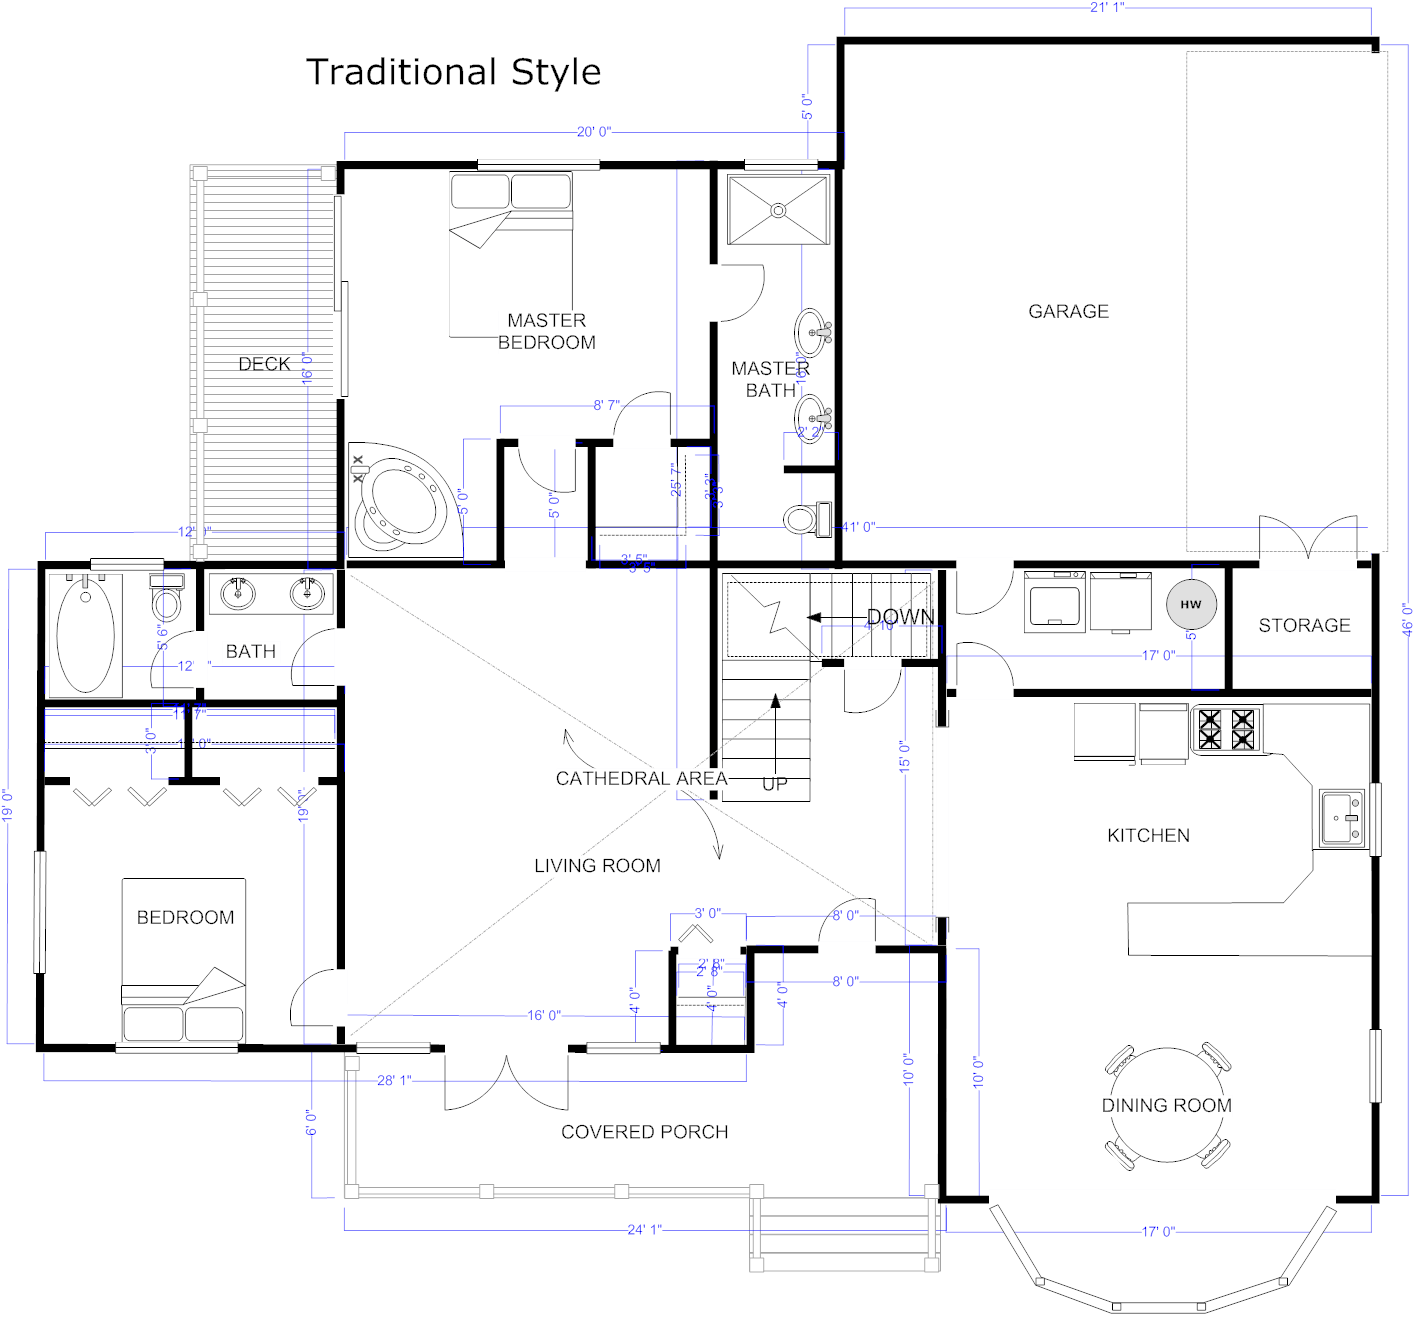 Best Kitchen Gallery: Floor Plan Maker Draw Floor Plans With Floor Plan Templates of Home Architecture Plans on rachelxblog.com